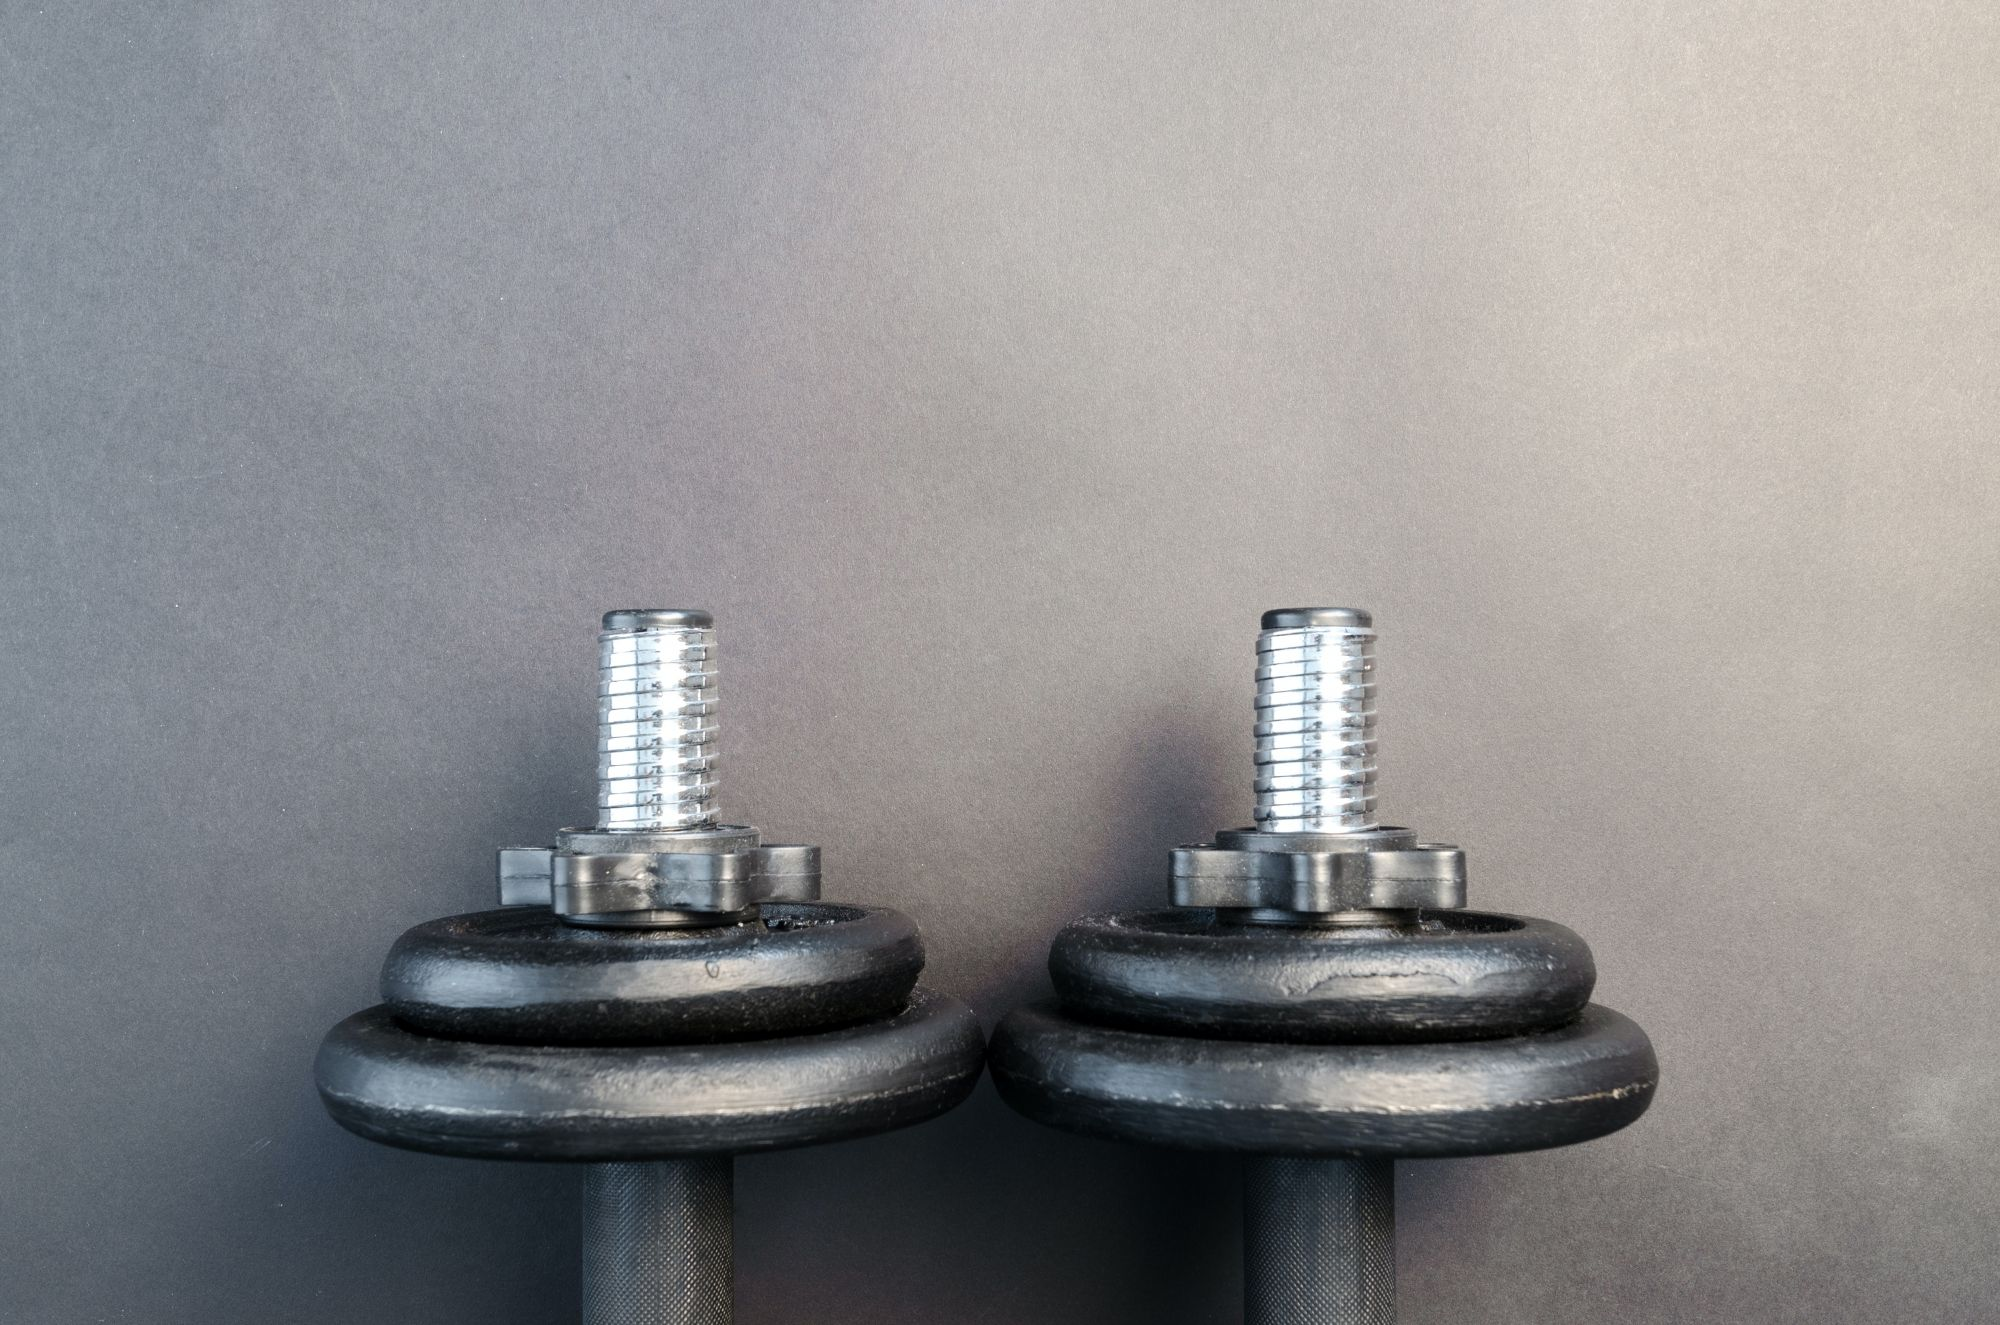 Where to Buy Gym Equipment: Building Your Own Fitness Haven At Home